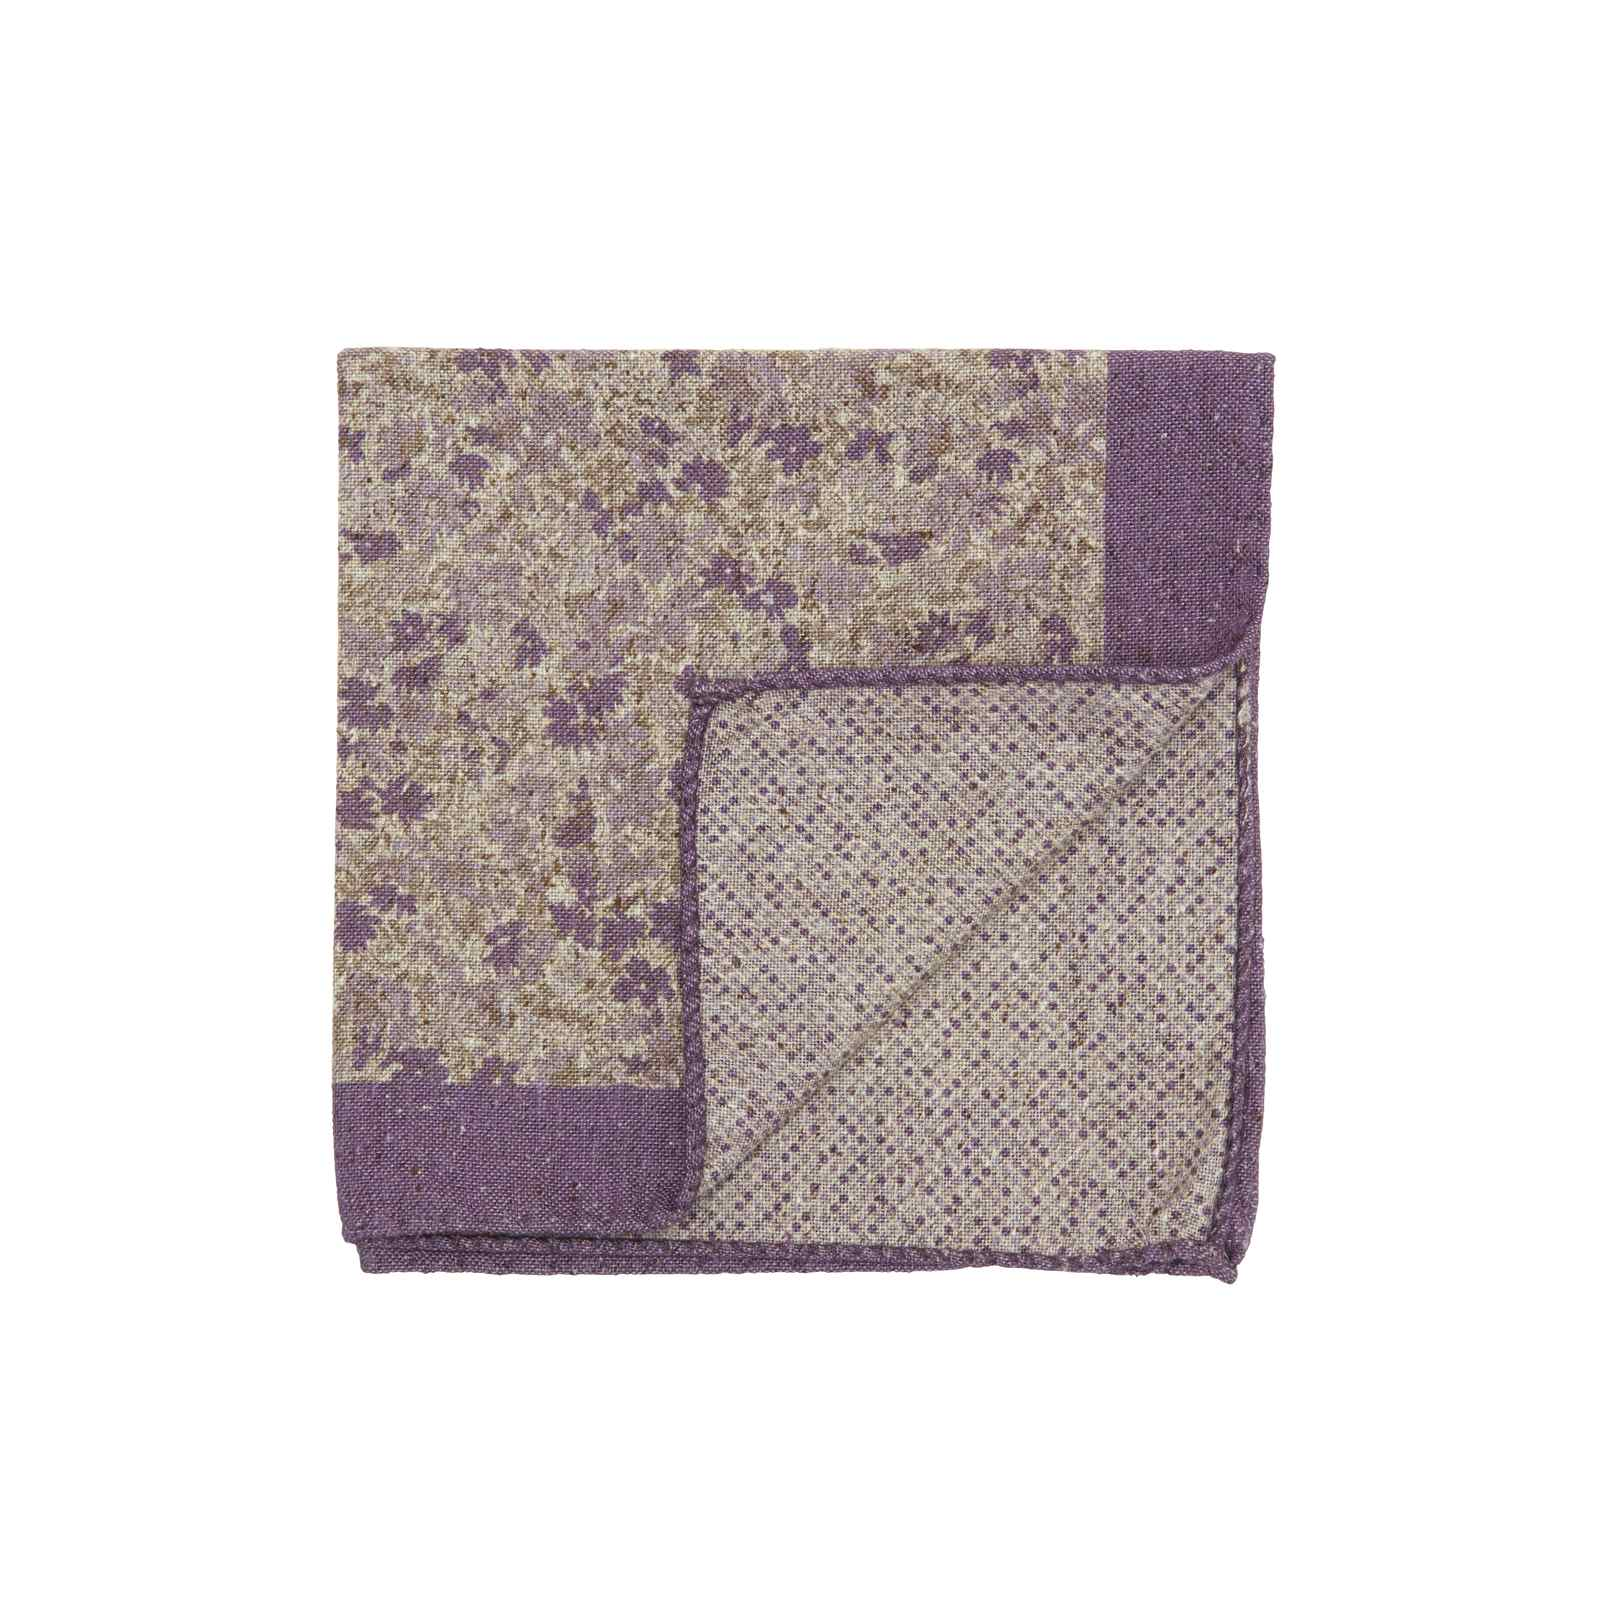 Purple and White Double Sided Pocket Square w/ Small Multicolor Flowers and Abstract Dots